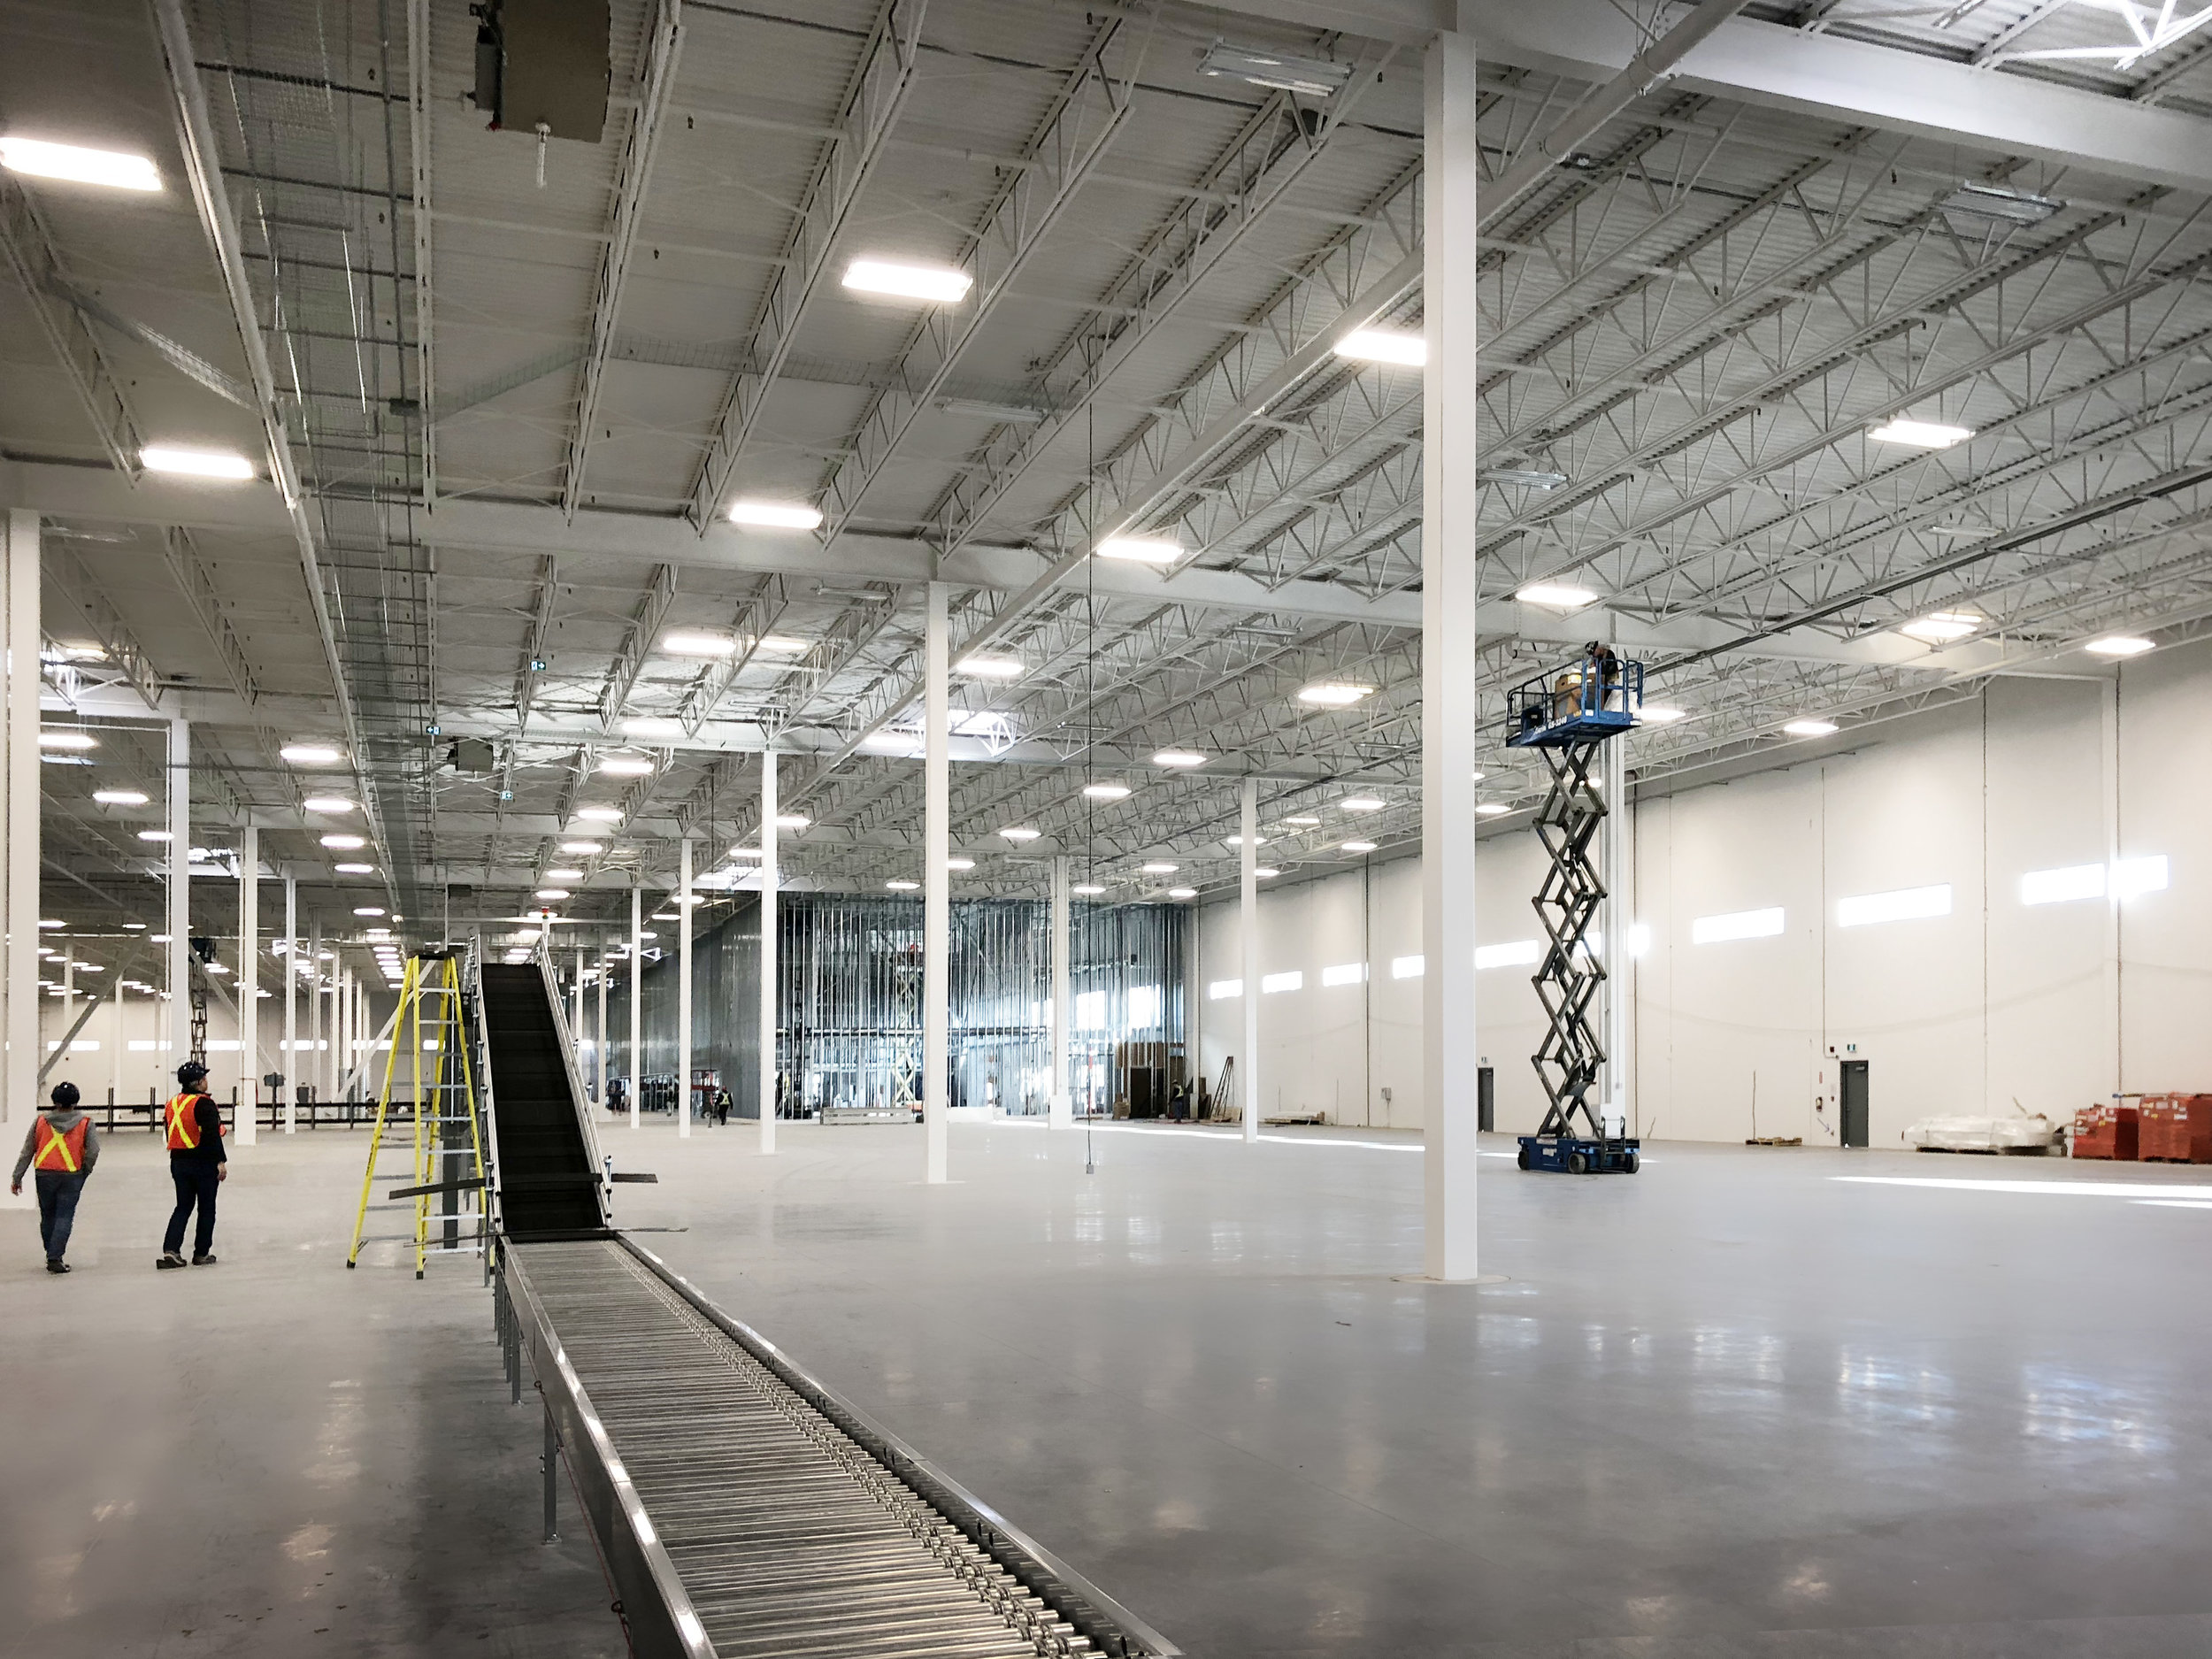 Conveyors were among the first items installed in the warehouse.